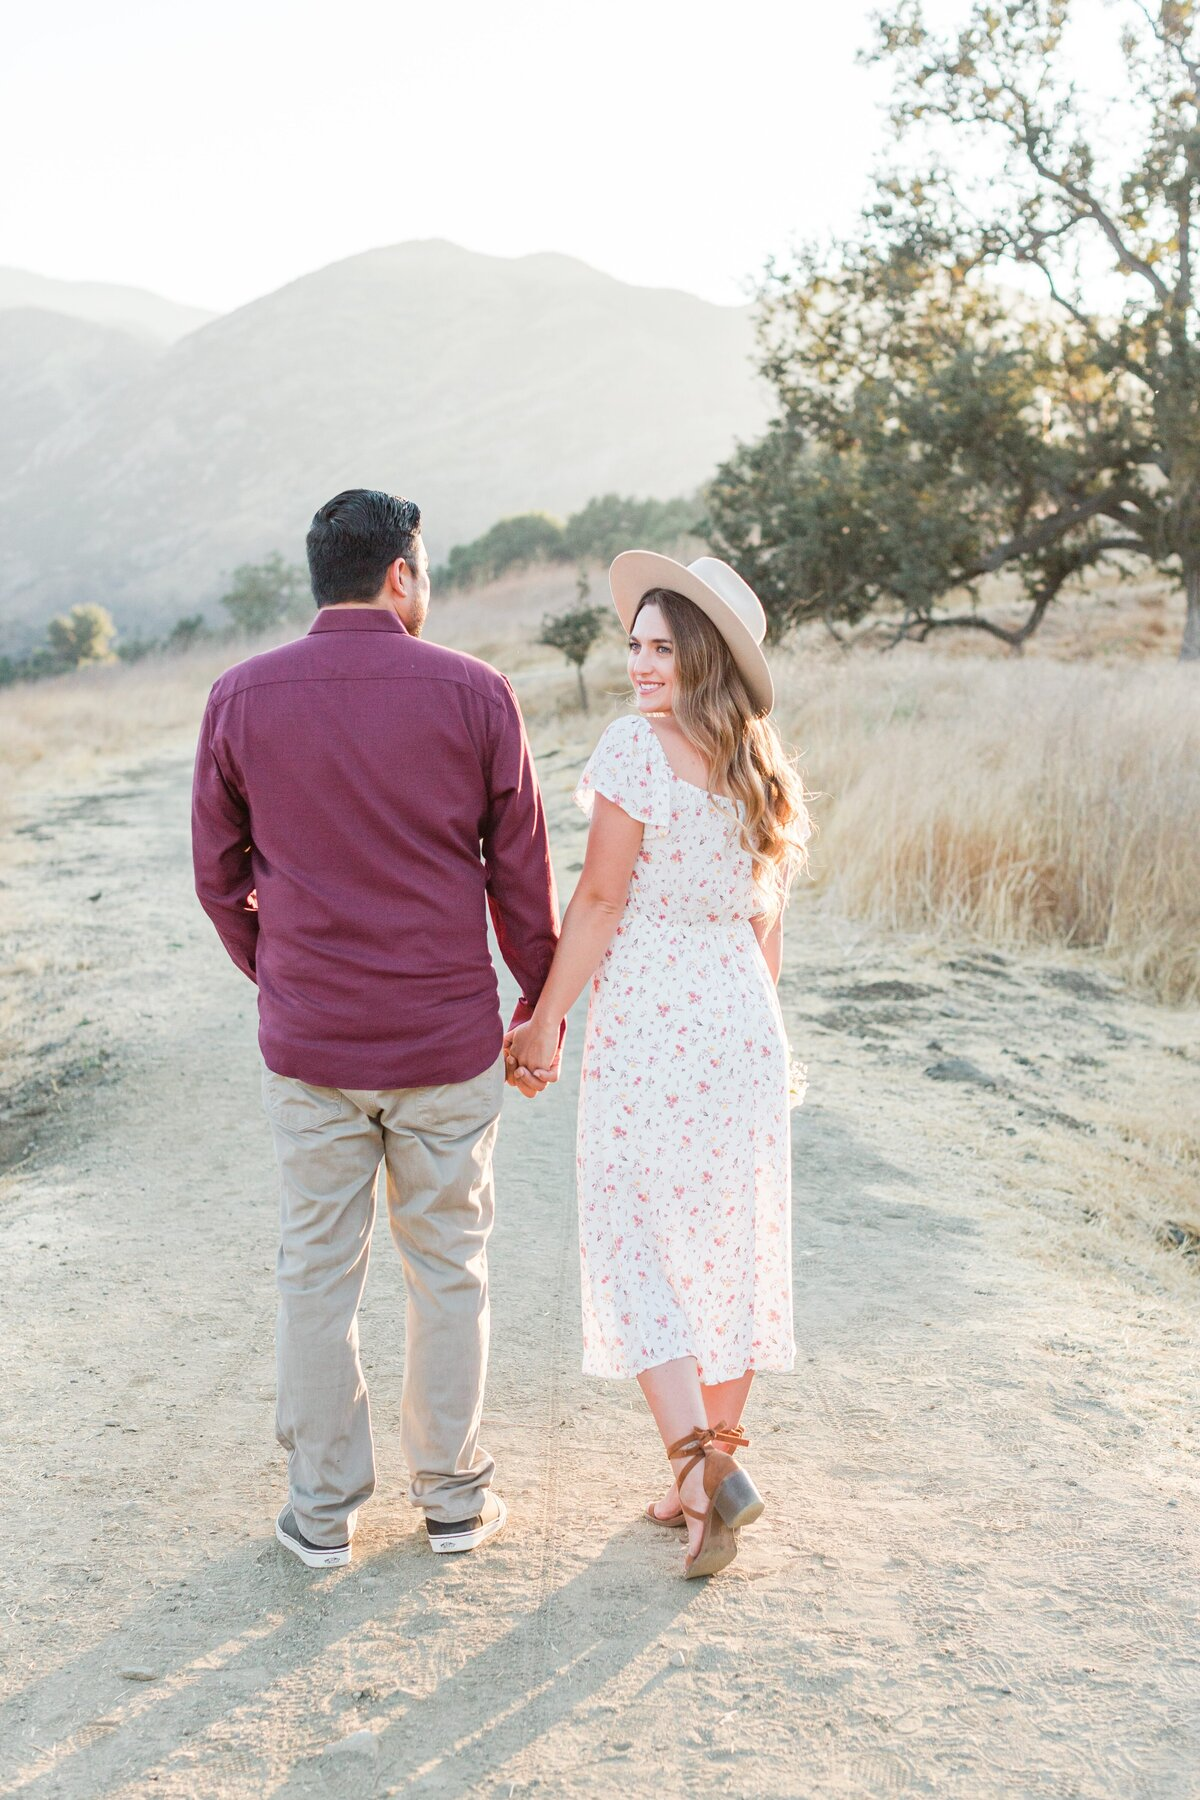 blog-Malibu-State-Creek-Park-Engagament-Shoot-boho-0047